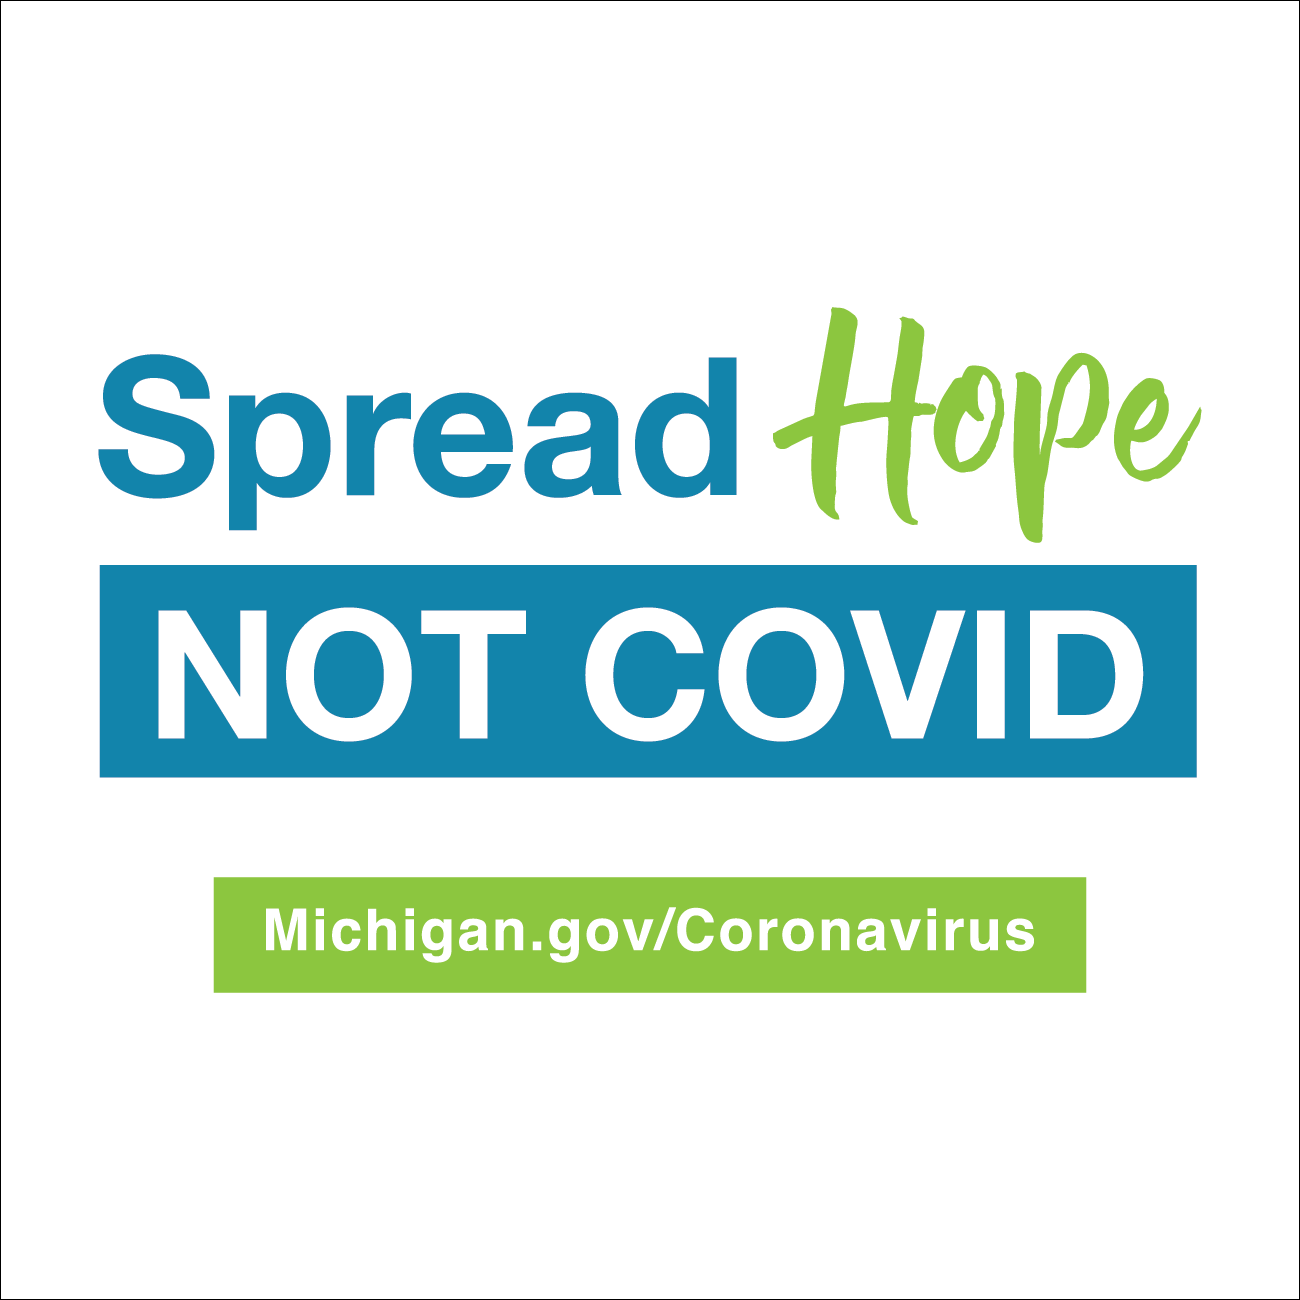 MAC joins 'Spread Hope' campaign to safely reopen Michigan